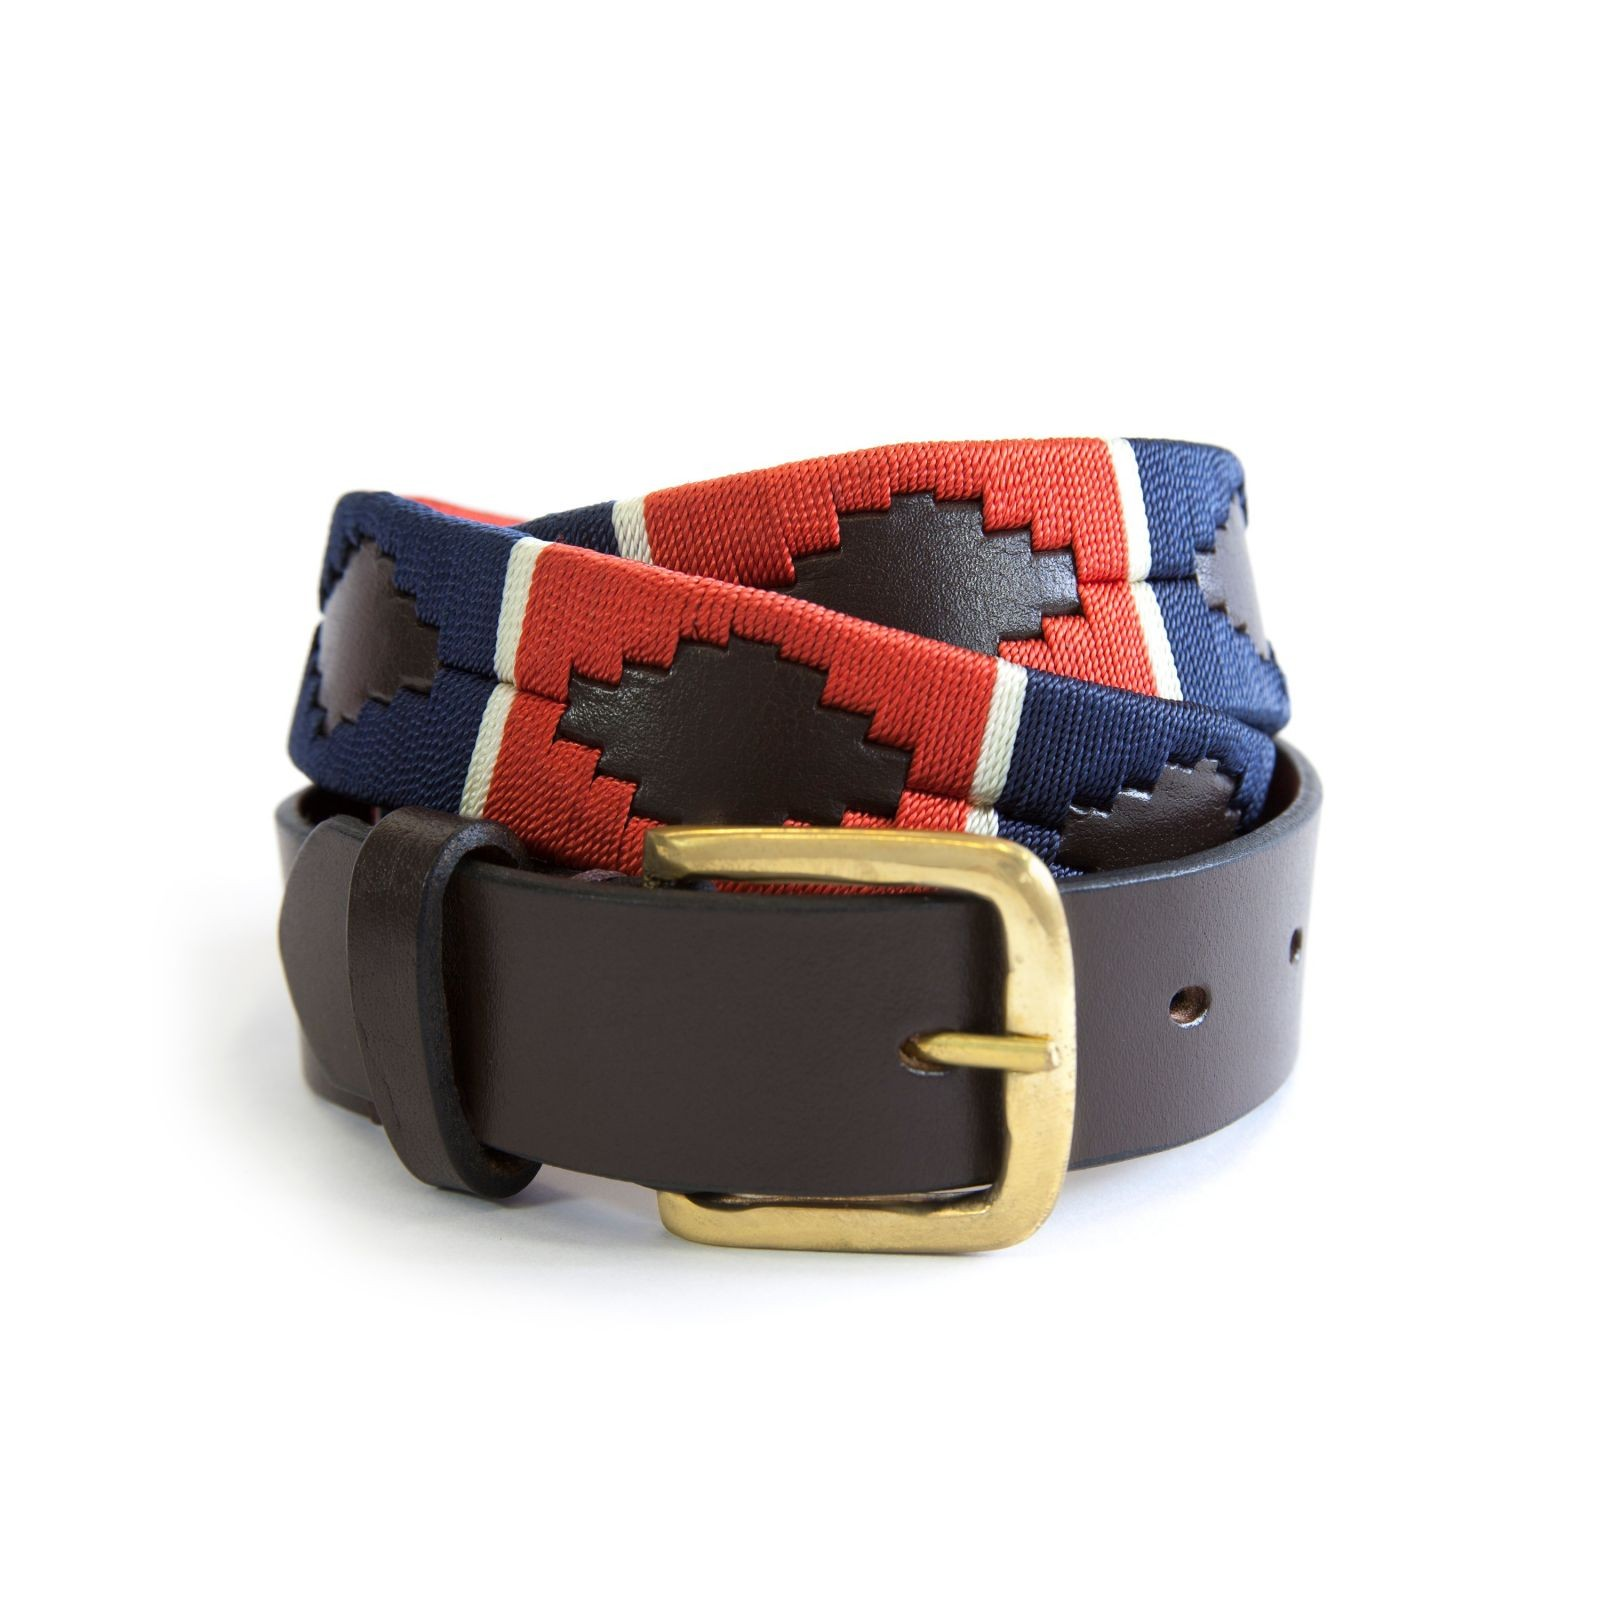 KM Polo Belt - Traditional